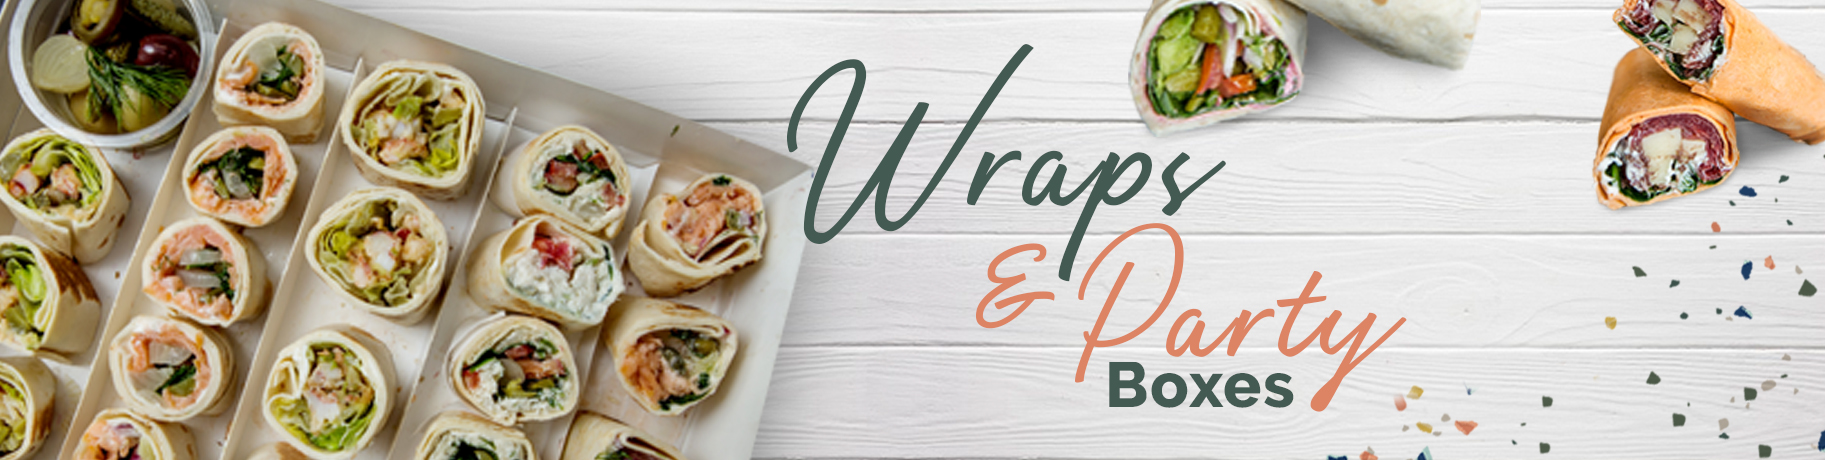 Sandwiches, Wraps & Party Boxes